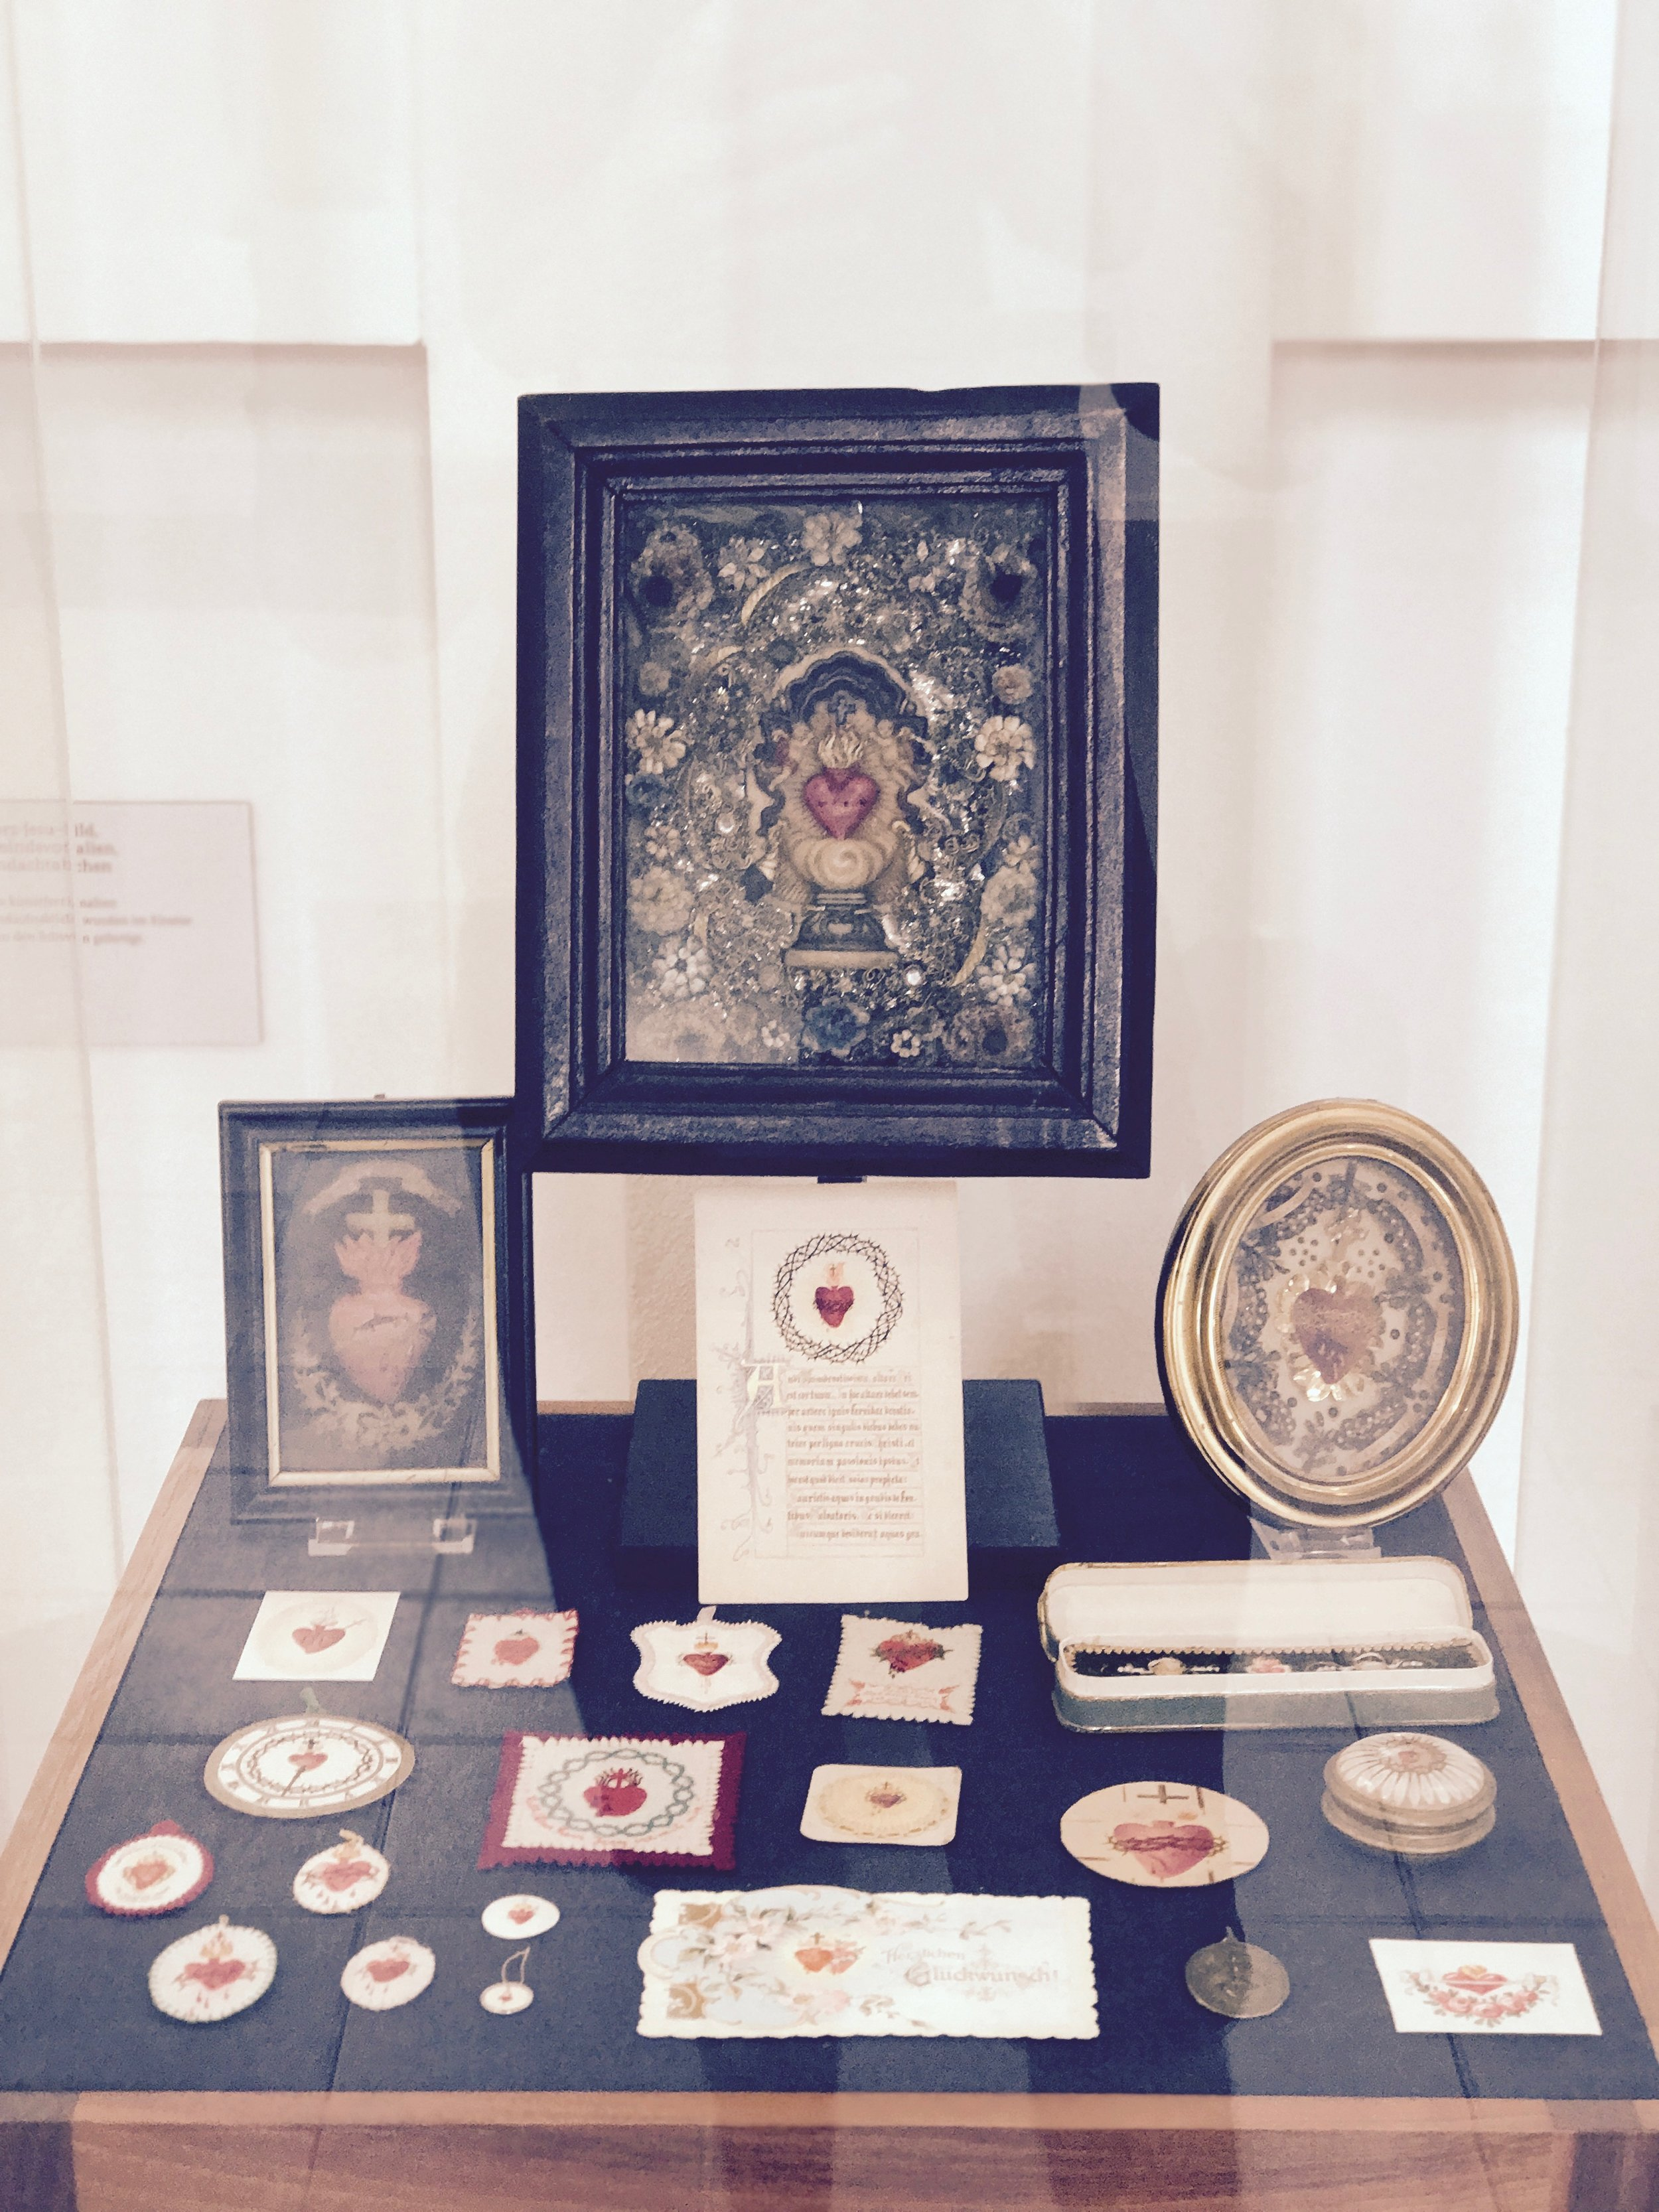 devotional relics emphasising the importance of empathy and suffering